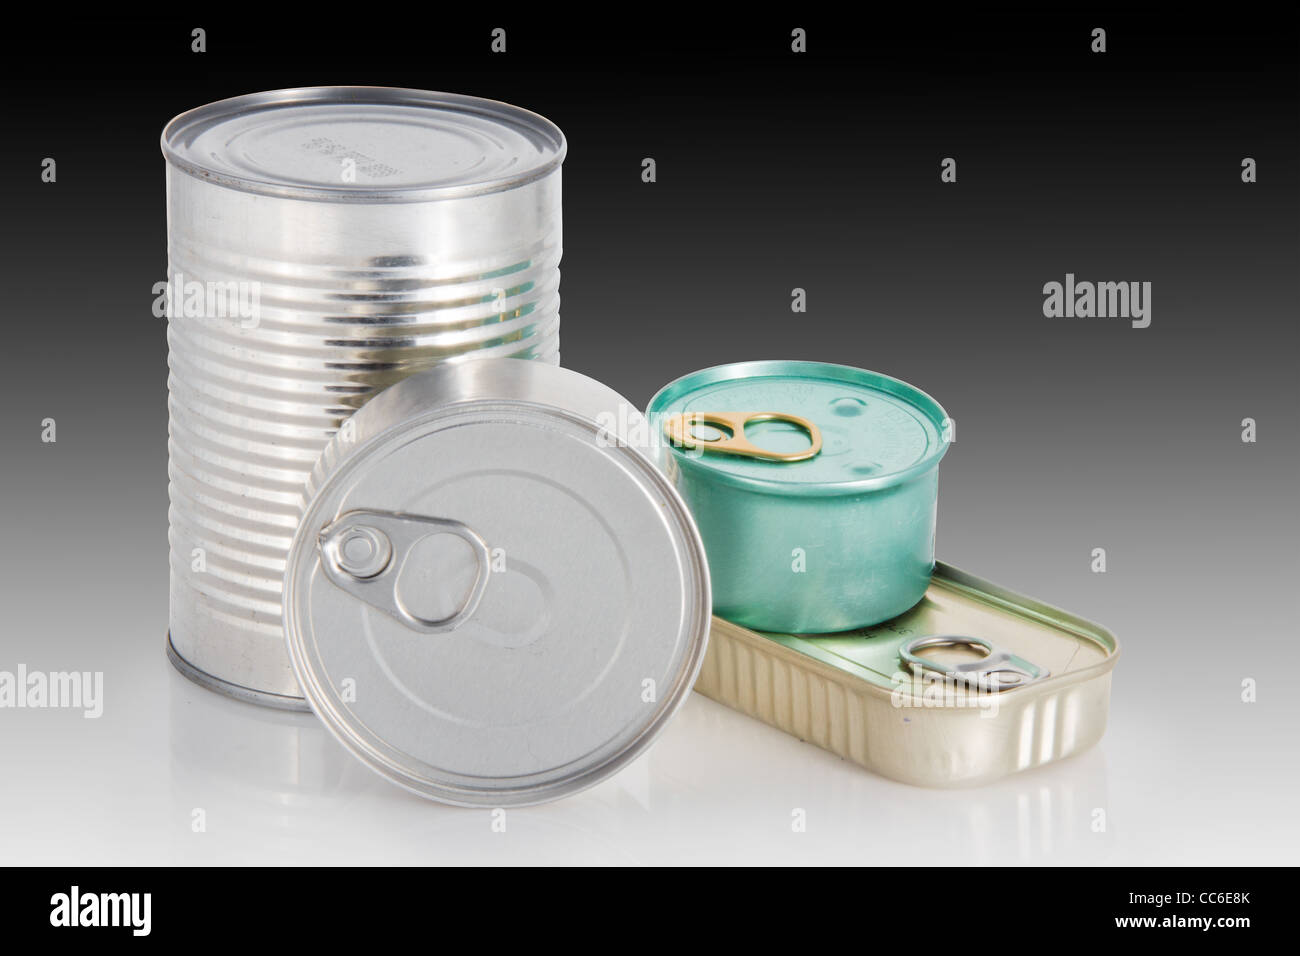 Four different shape and colors cans with a gradient background - Stock Image